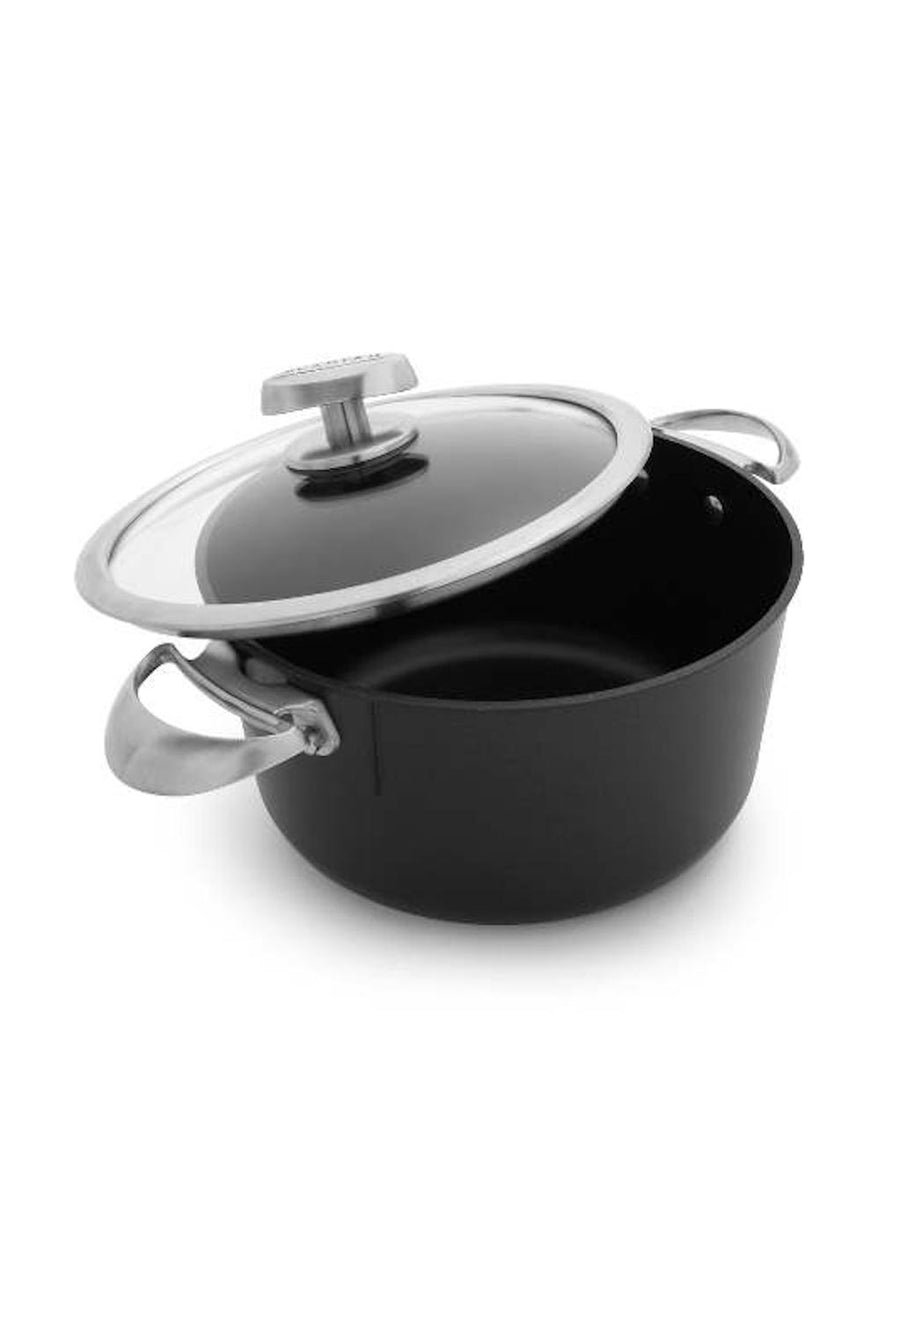 Scanpan Pro IQ Dutch Oven with lid